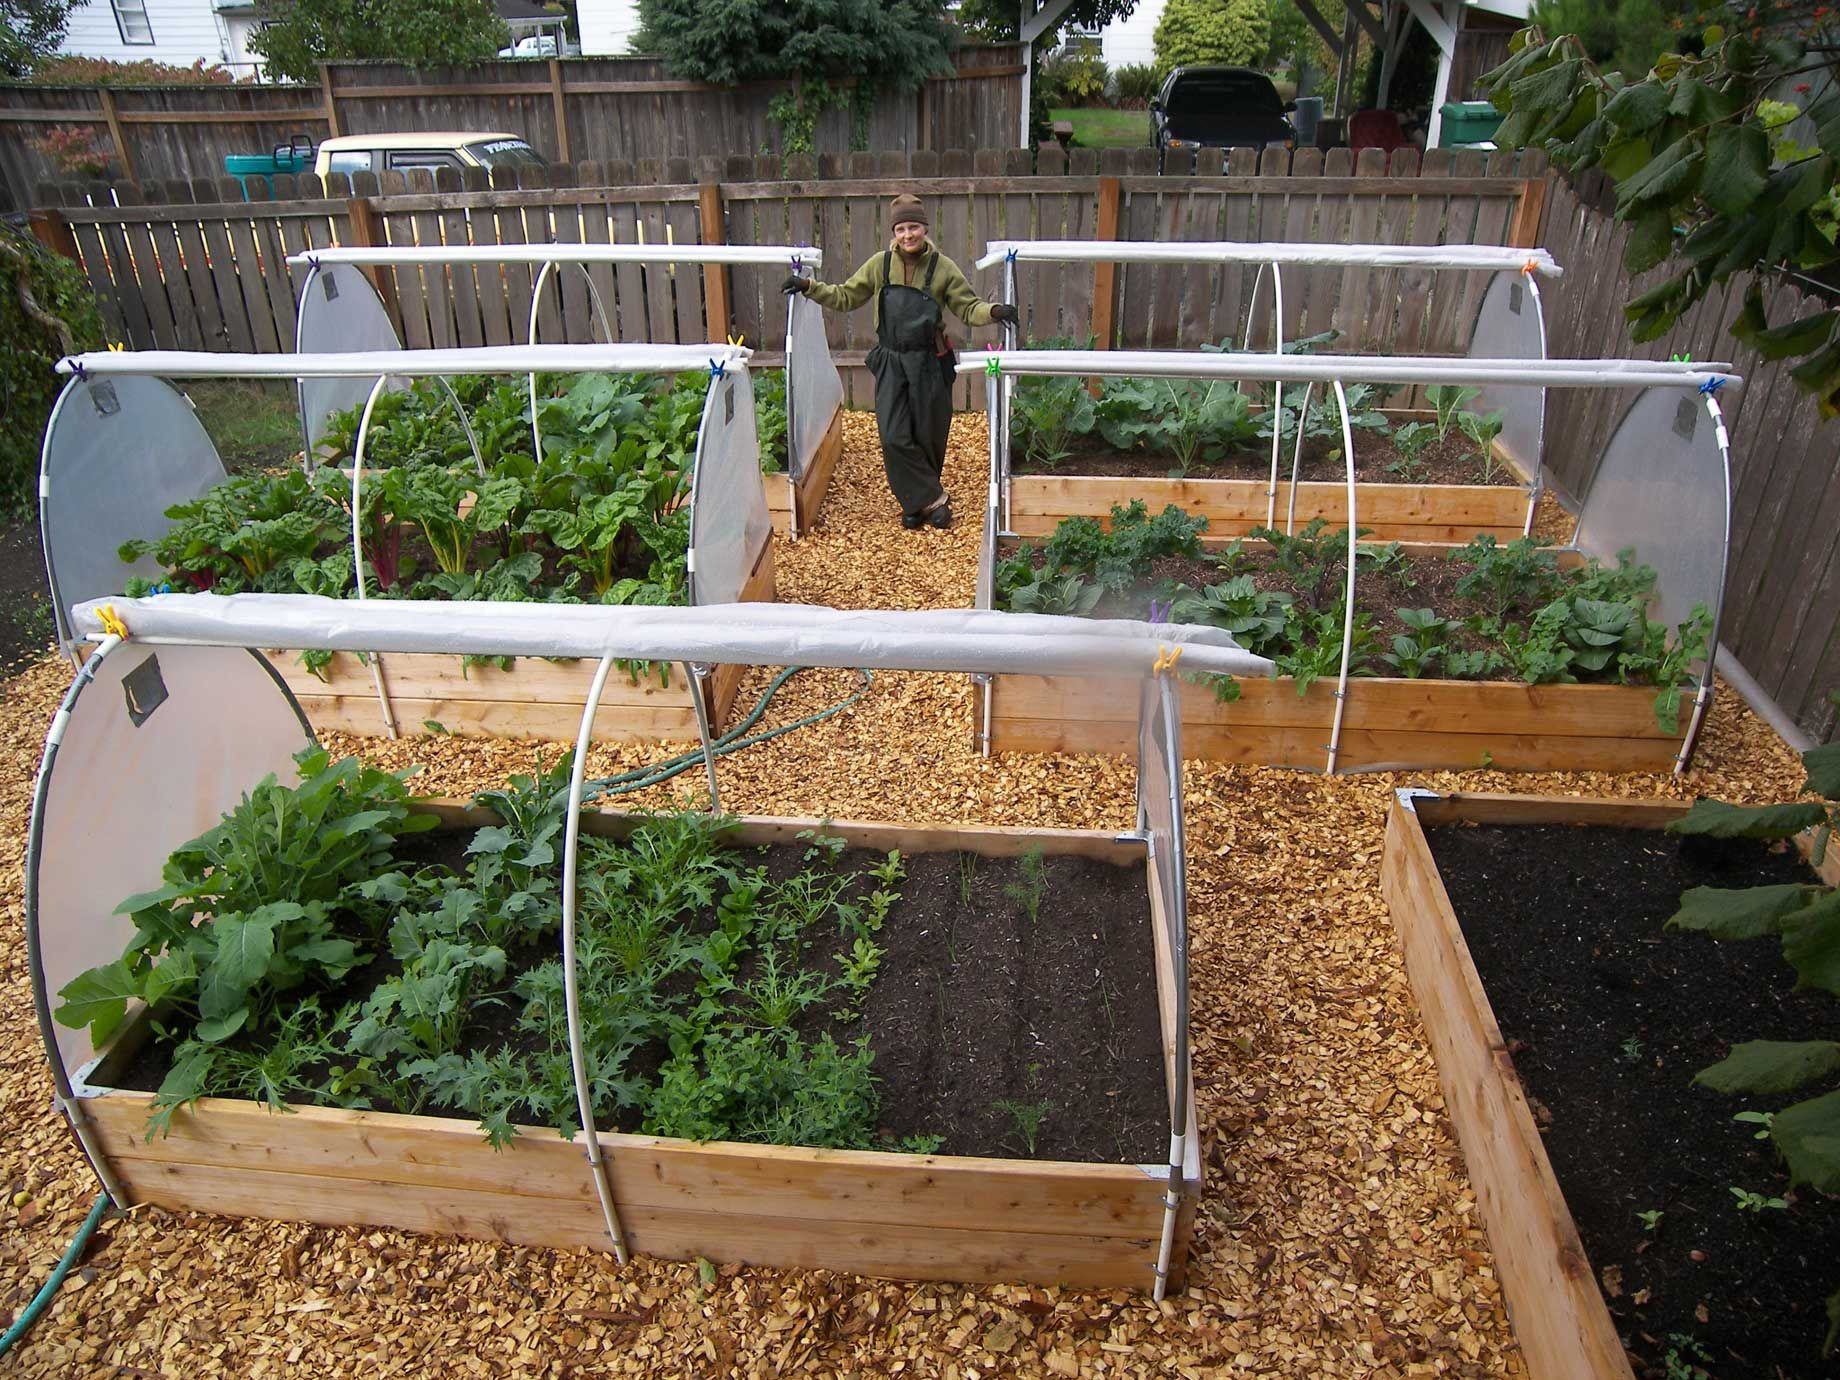 winter garden raised beds with hoop houses i wonder how much this could extend